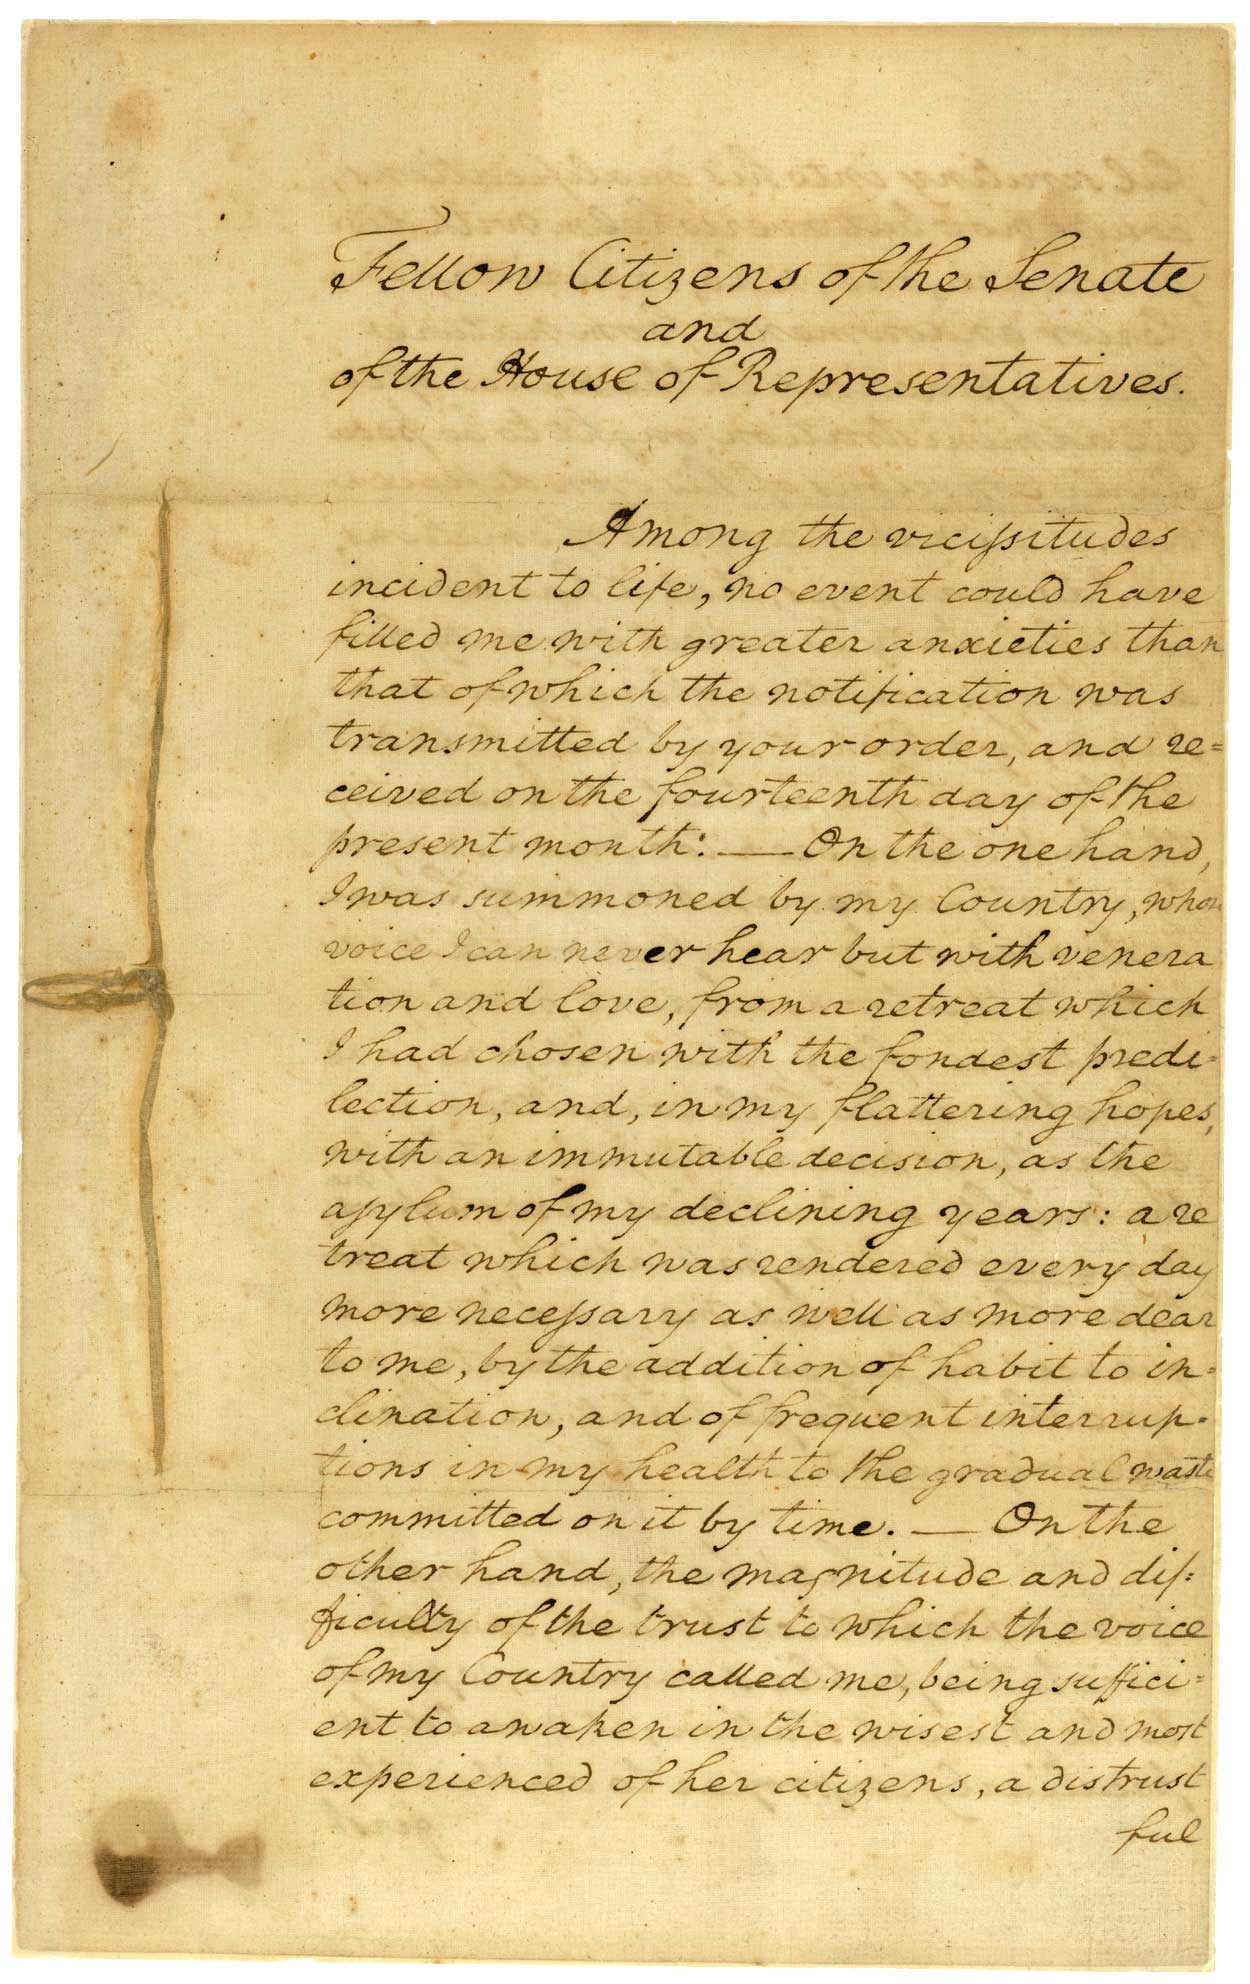 George washington's inaugural address summary